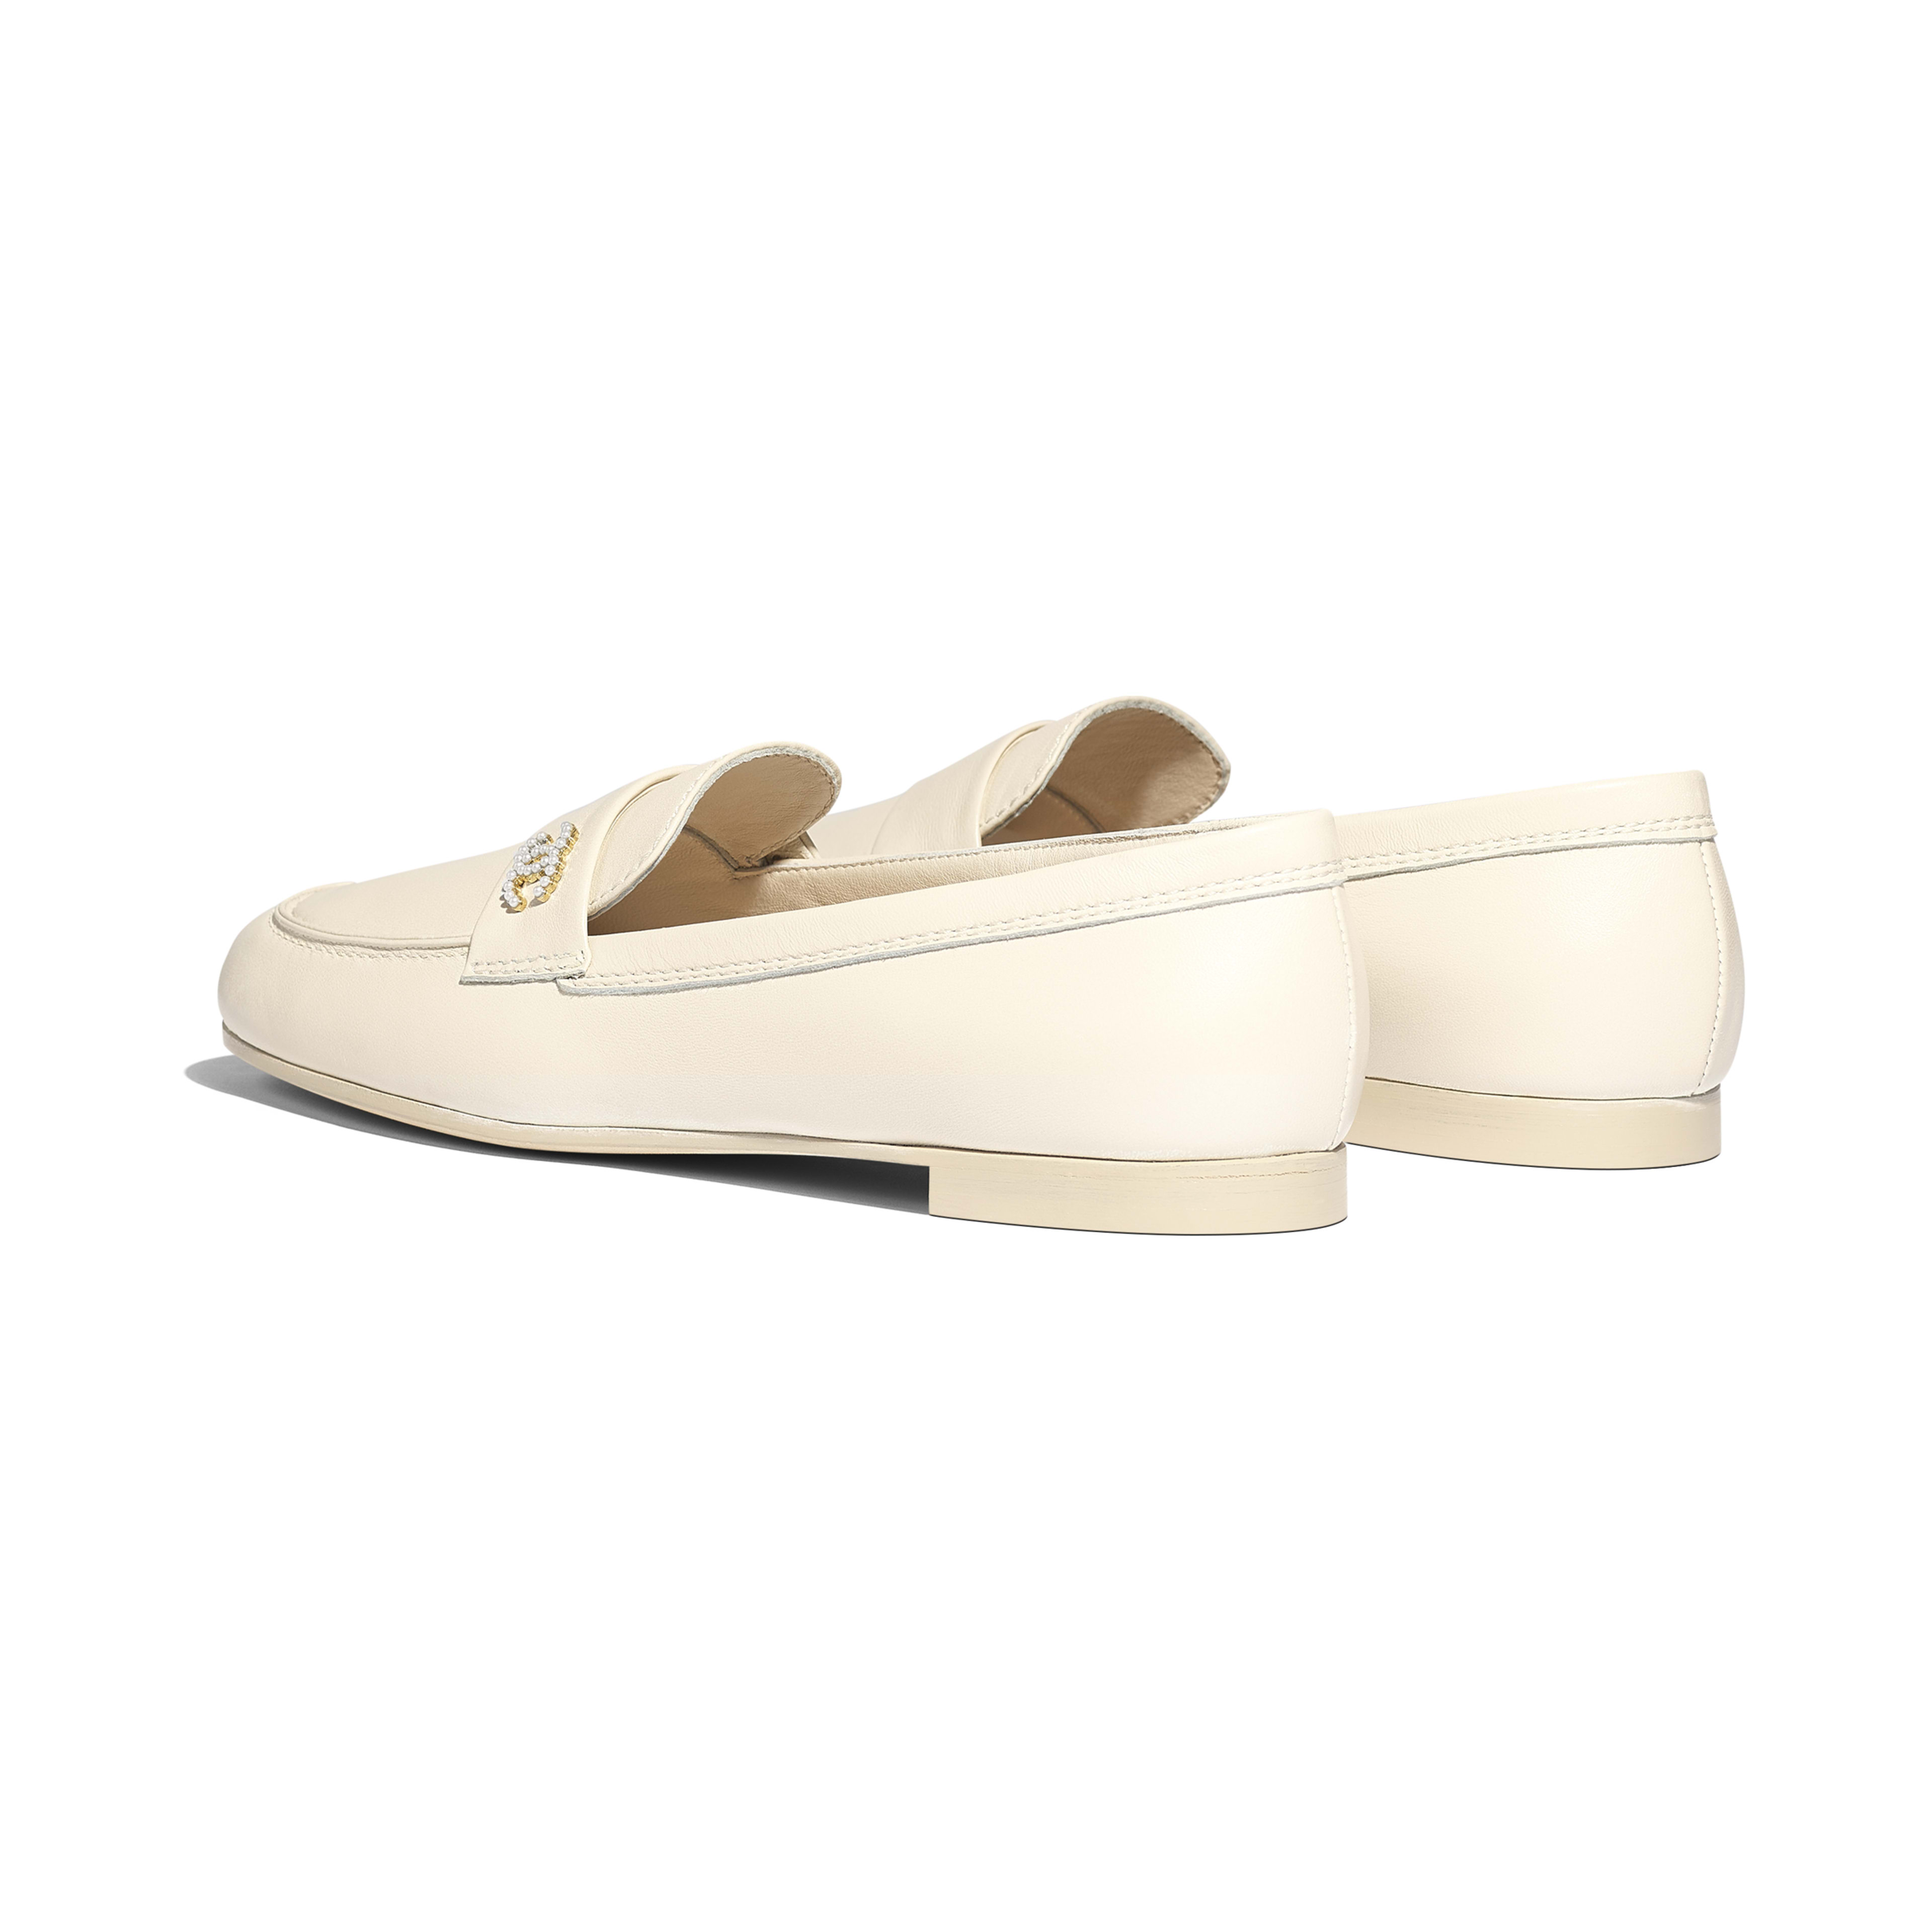 Loafers - Light Beige - Lambskin - Other view - see full sized version